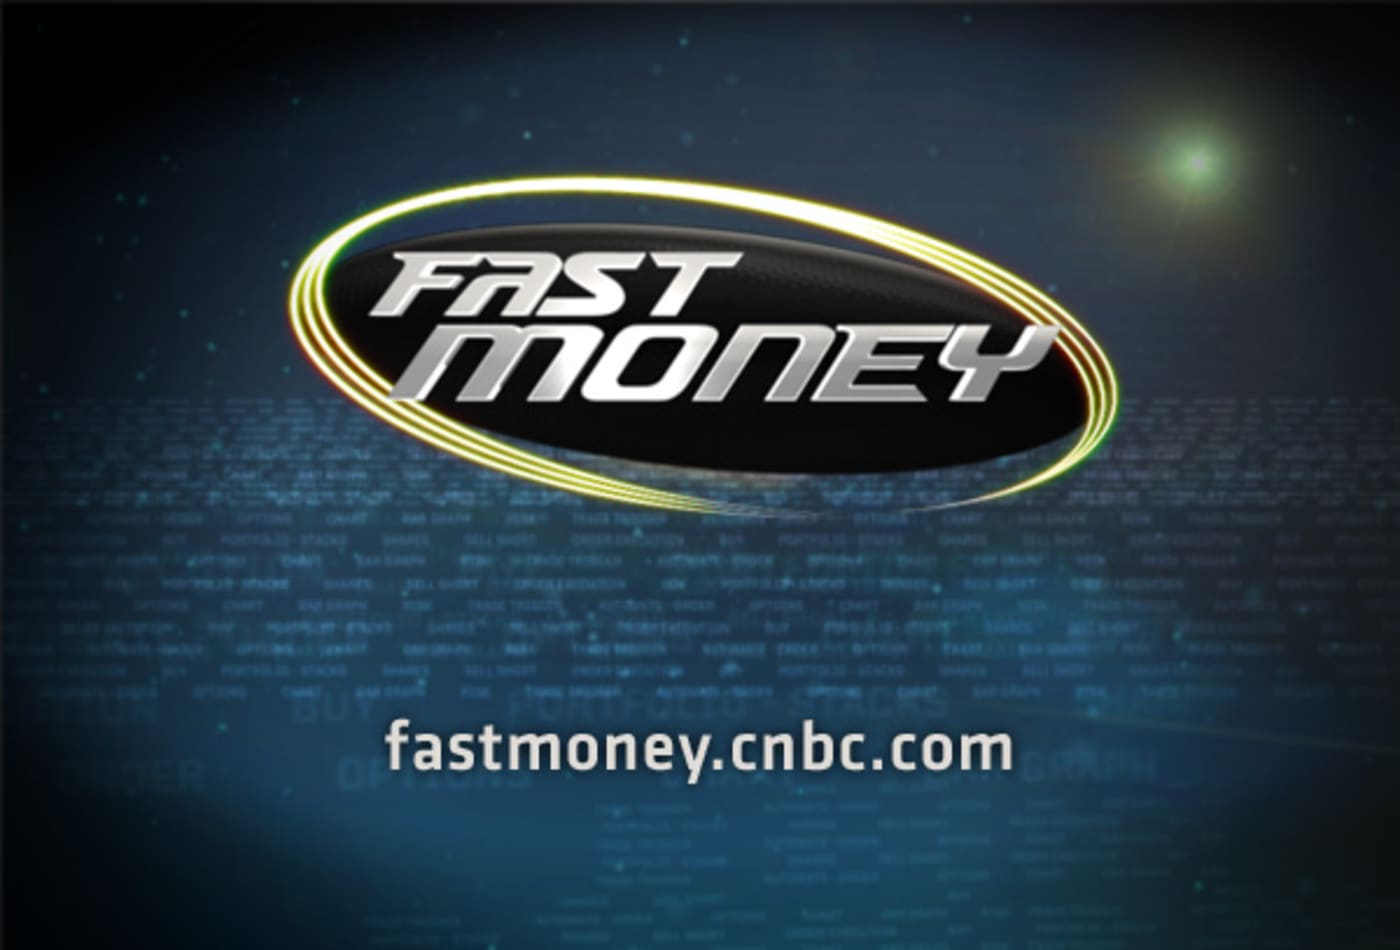 46131814 fm-slow-money-endpage.jpg